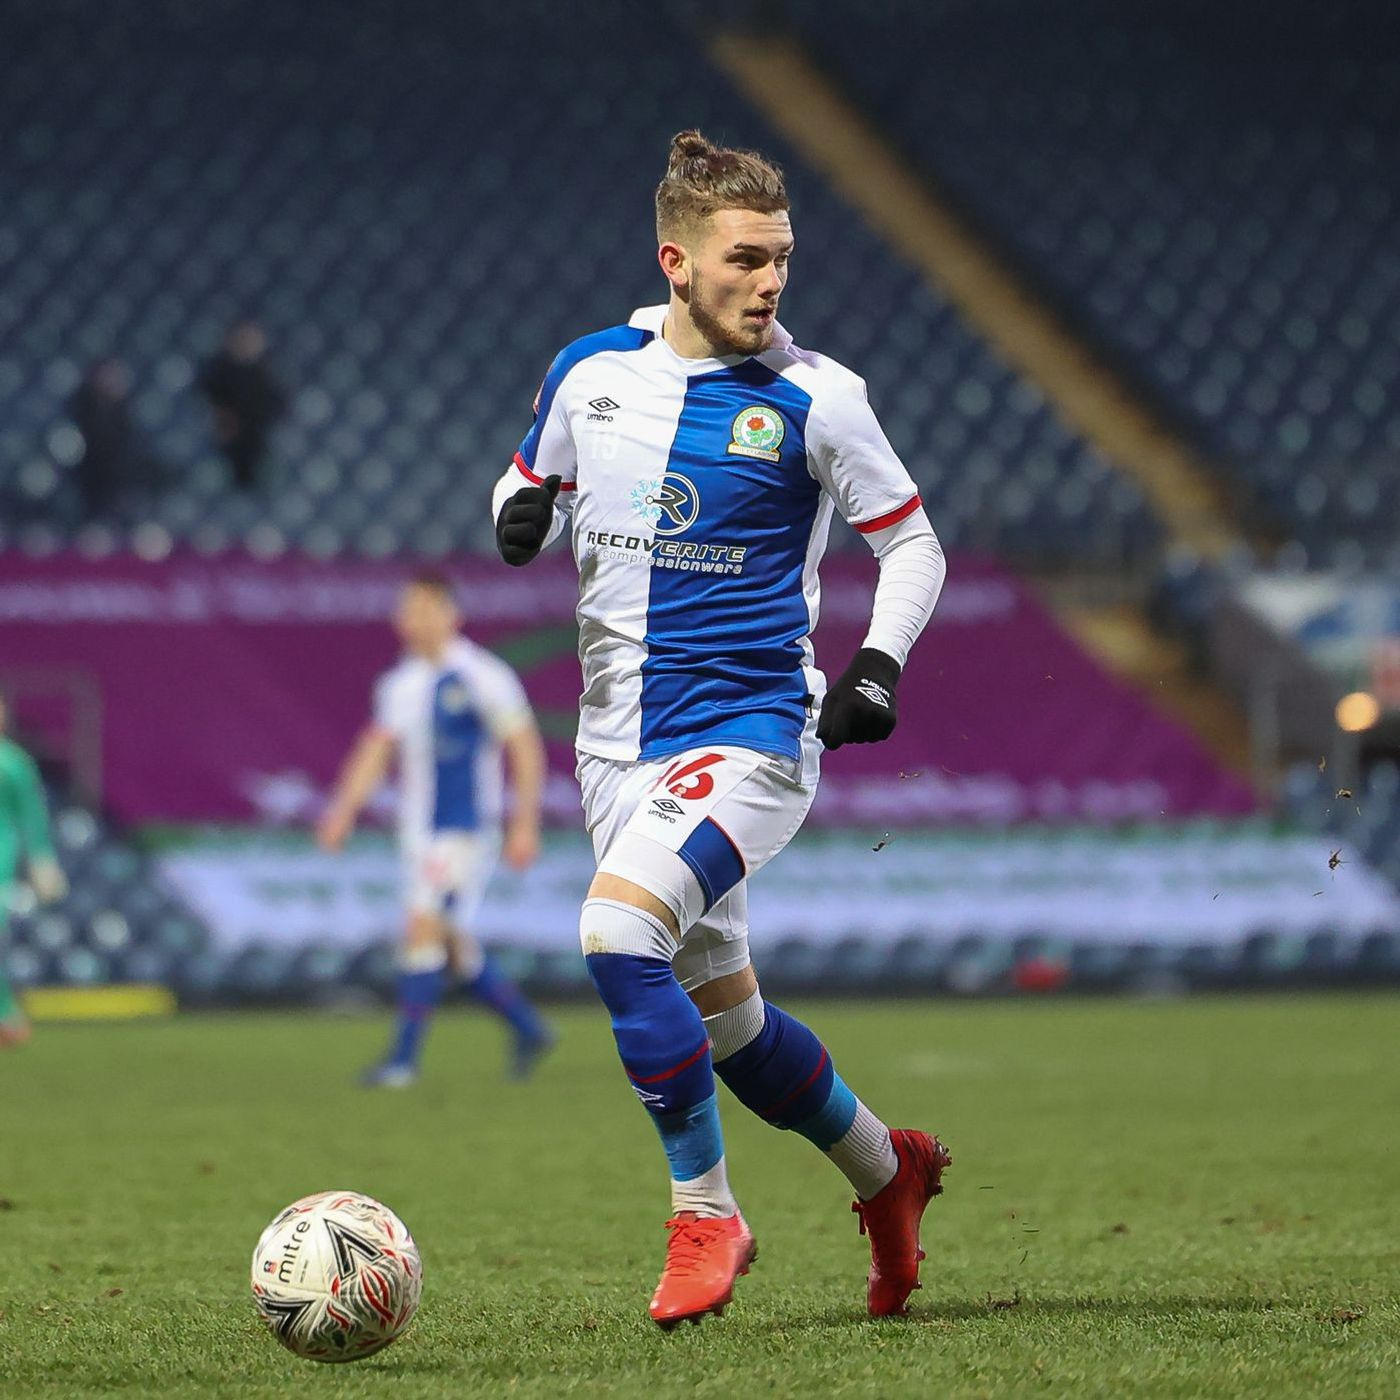 Liverpool Loan Watch: Harvey Elliott's next step, Marko Grujic frustration and forgotten Reds forward drawing Erling Haaland comparisons